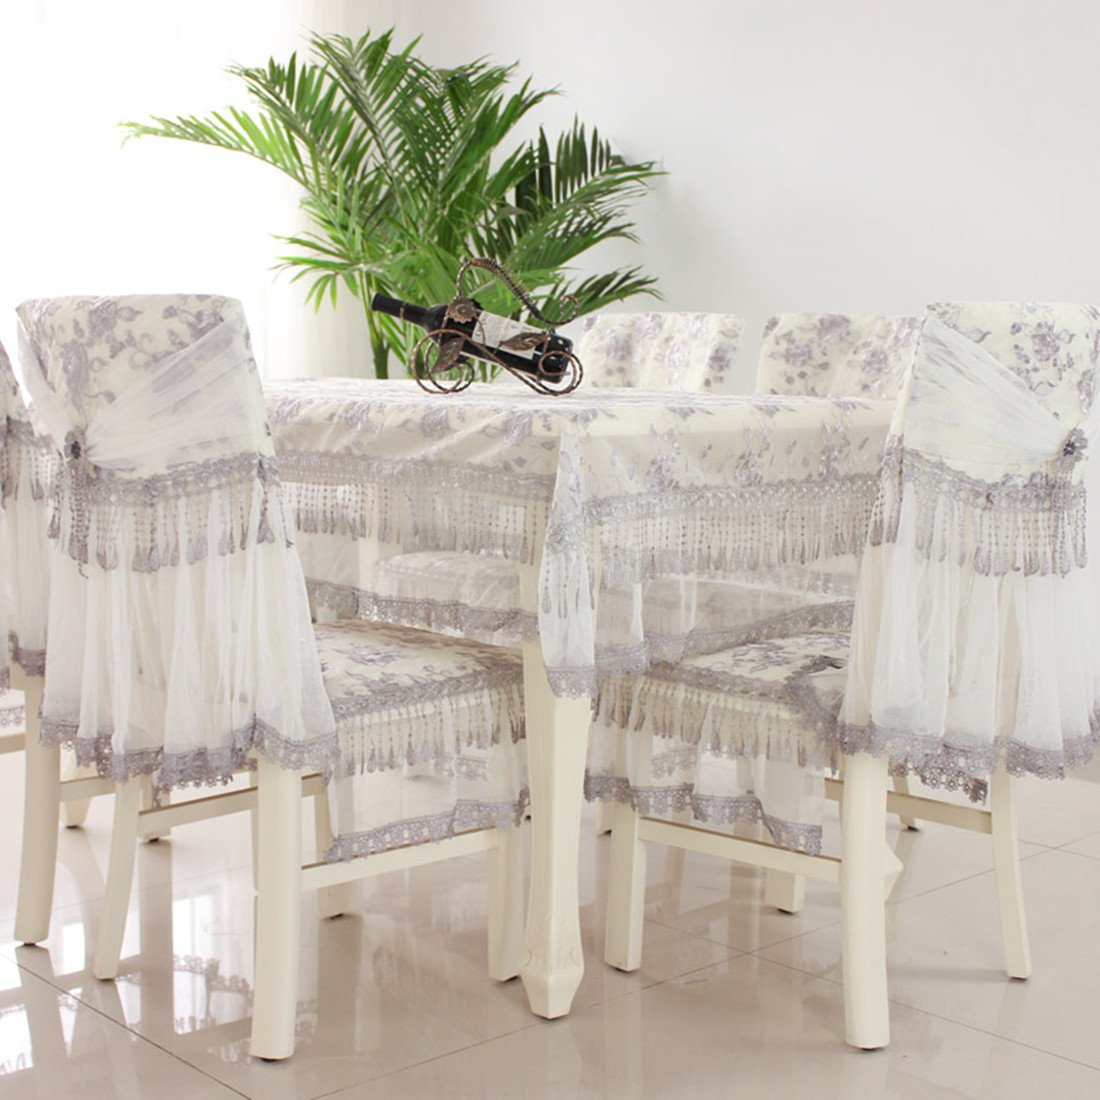 Country style grey check lace square tablecloths 59''59''(150 150cm)